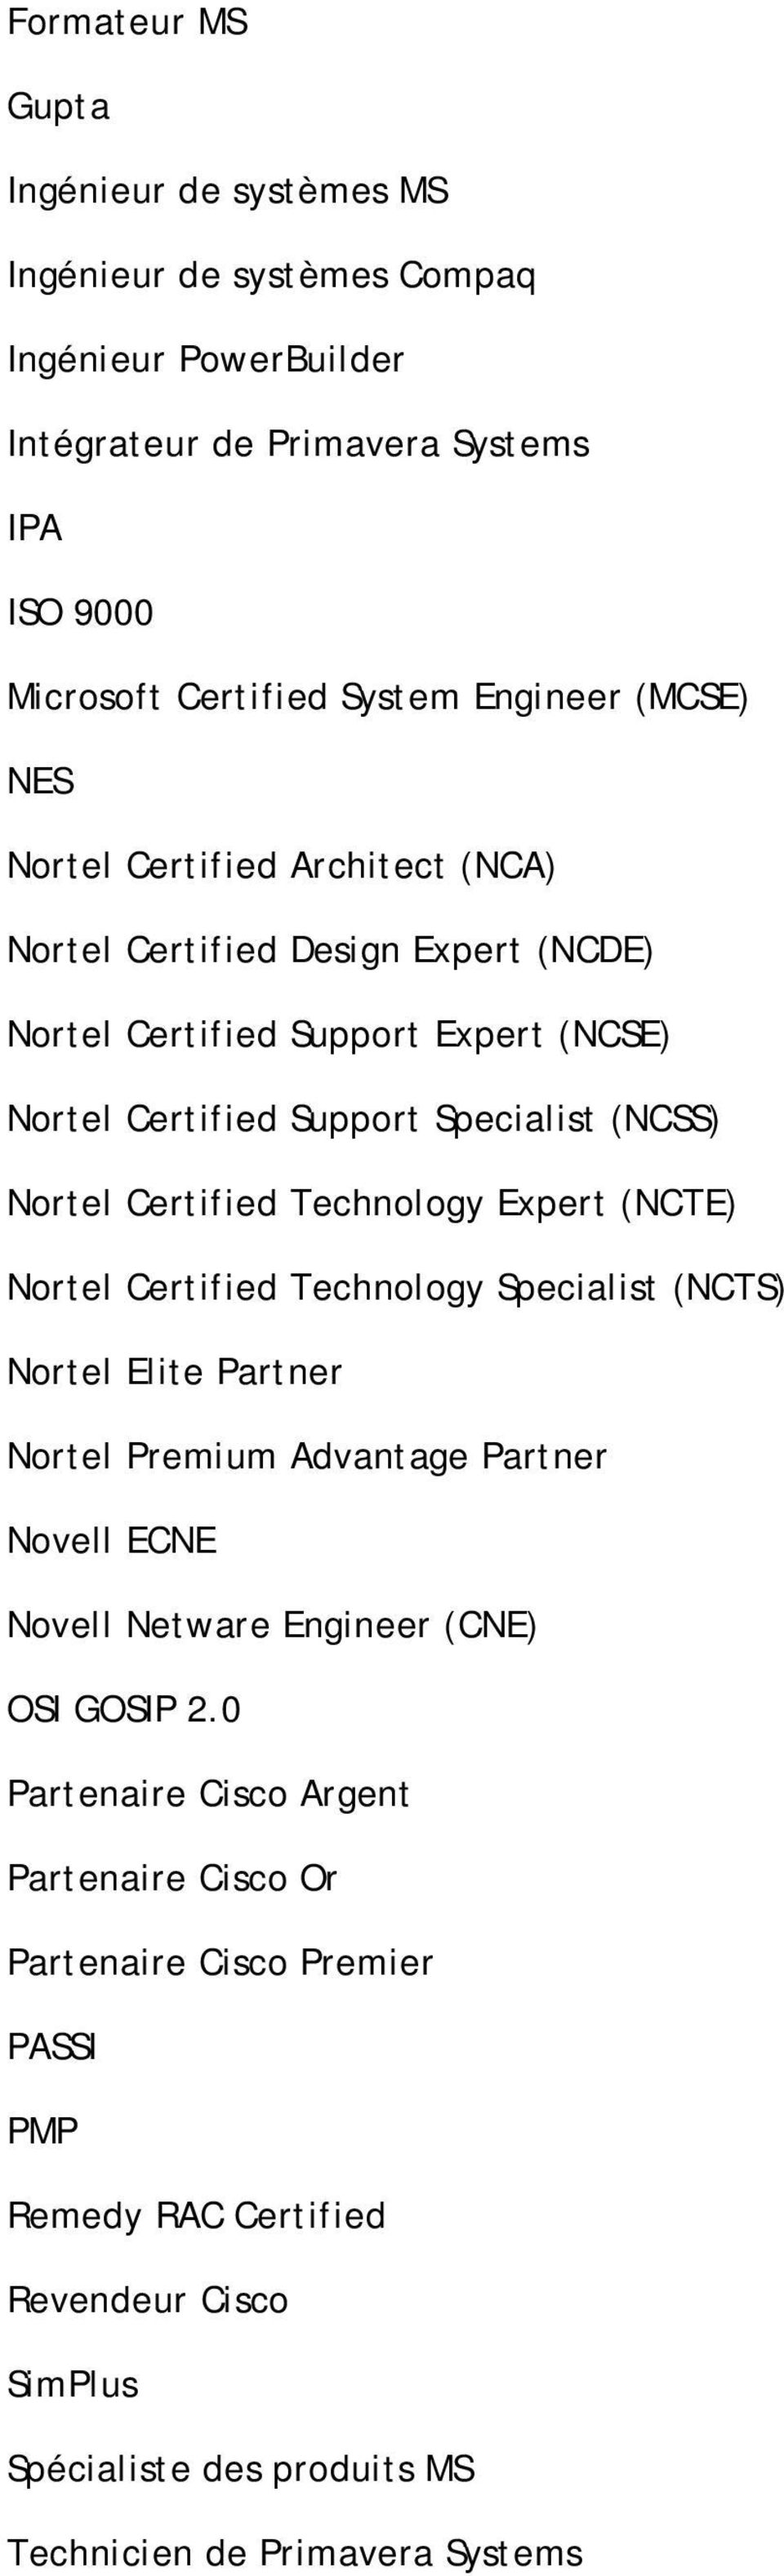 Technology Expert (NCTE) Nortel Certified Technology Specialist (NCTS) Nortel Elite Partner Nortel Premium Advantage Partner Novell ECNE Novell Netware Engineer (CNE) OSI GOSIP 2.